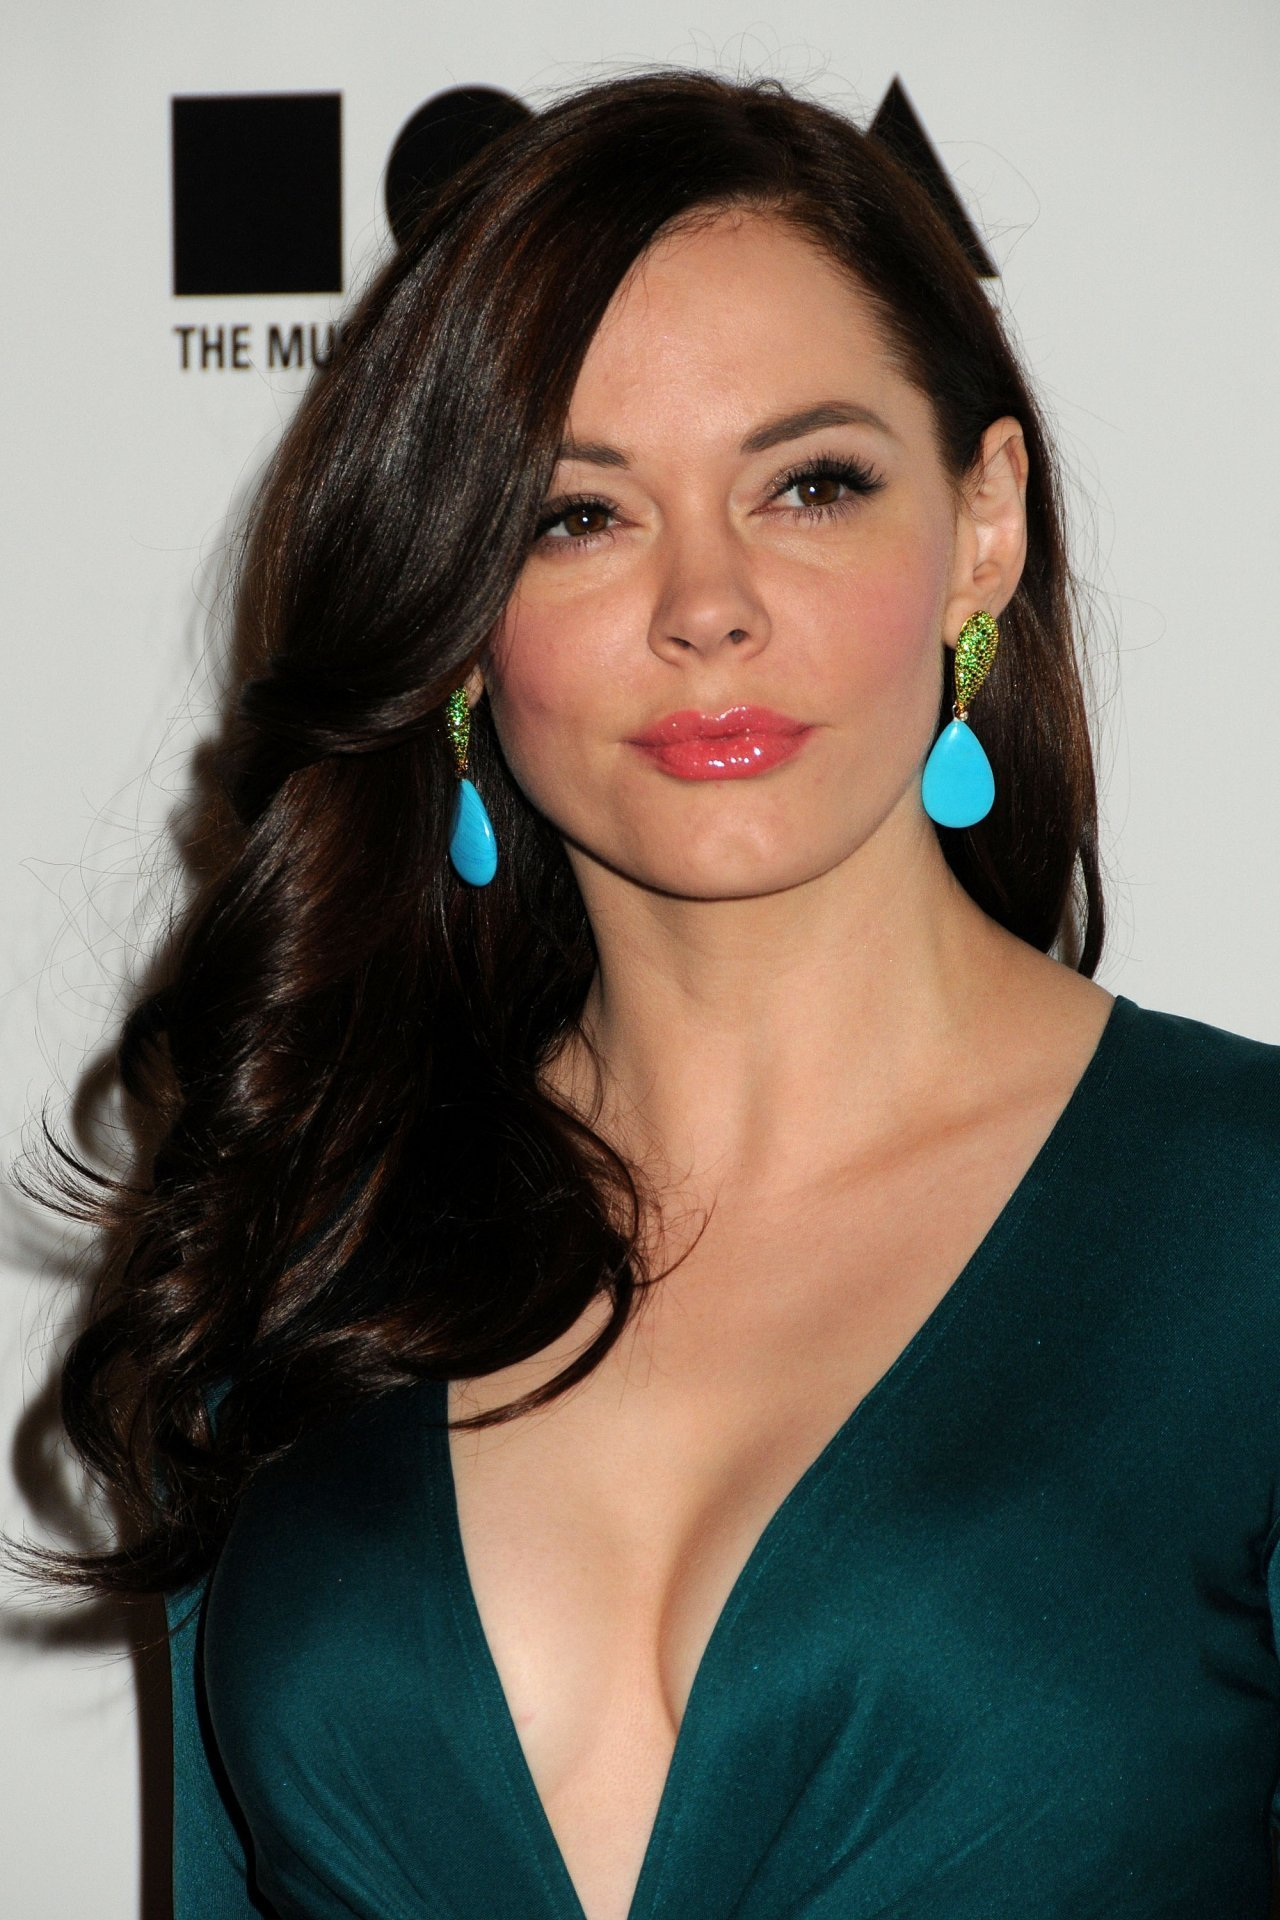 rose mcgowan pictures - photo #14